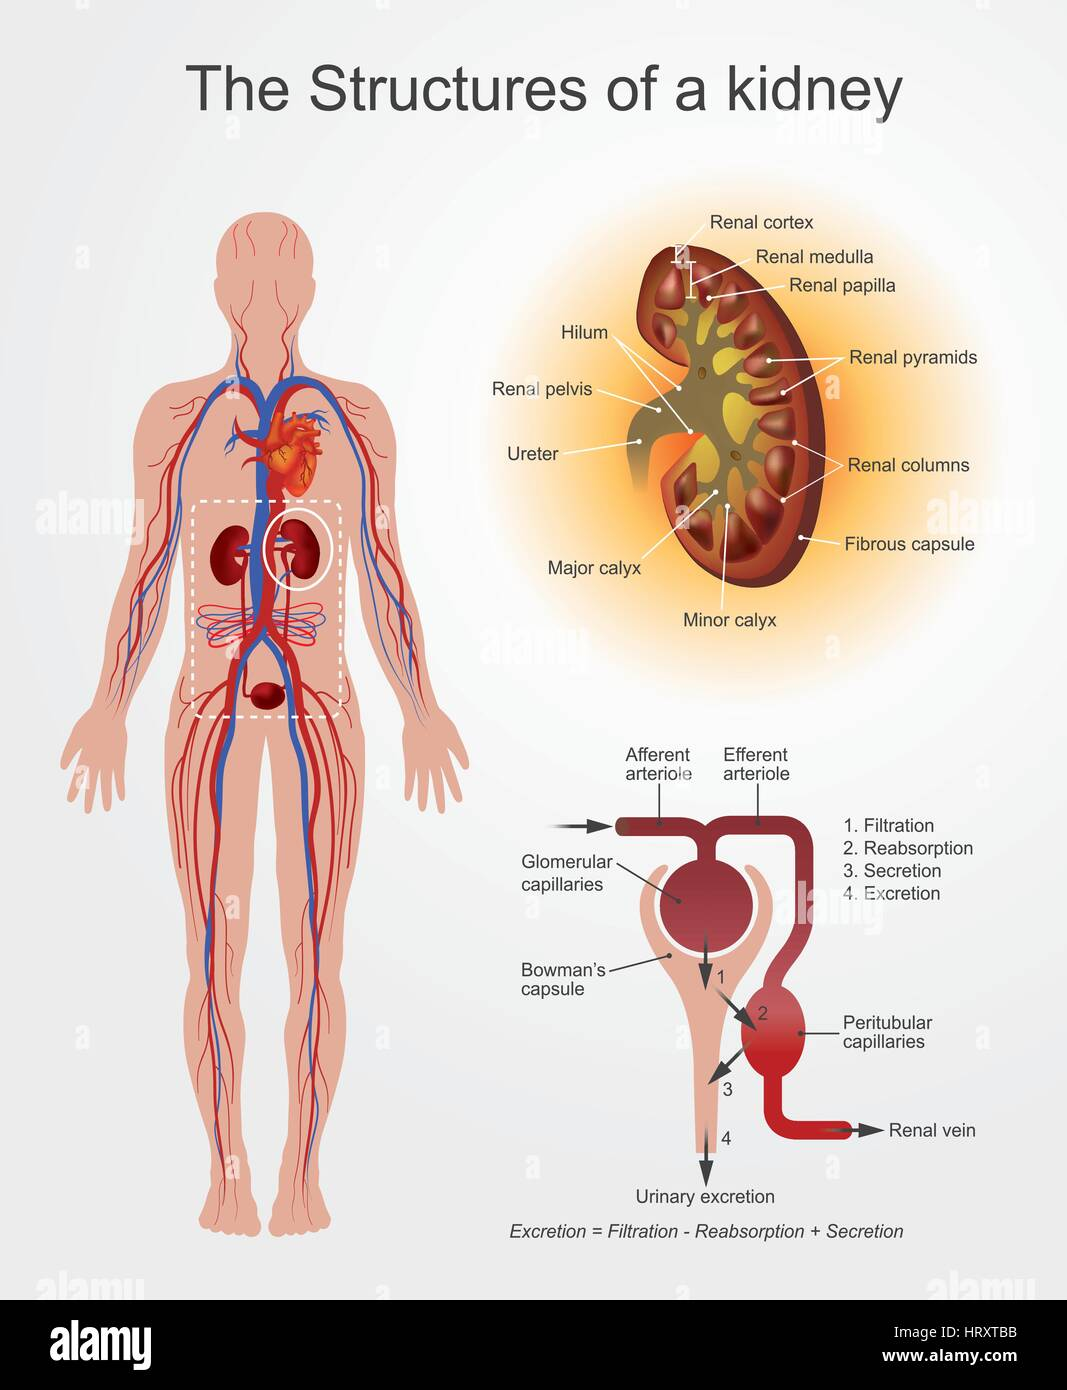 The Kidneys Are Bean Shaped Organs That Serve Several Essential